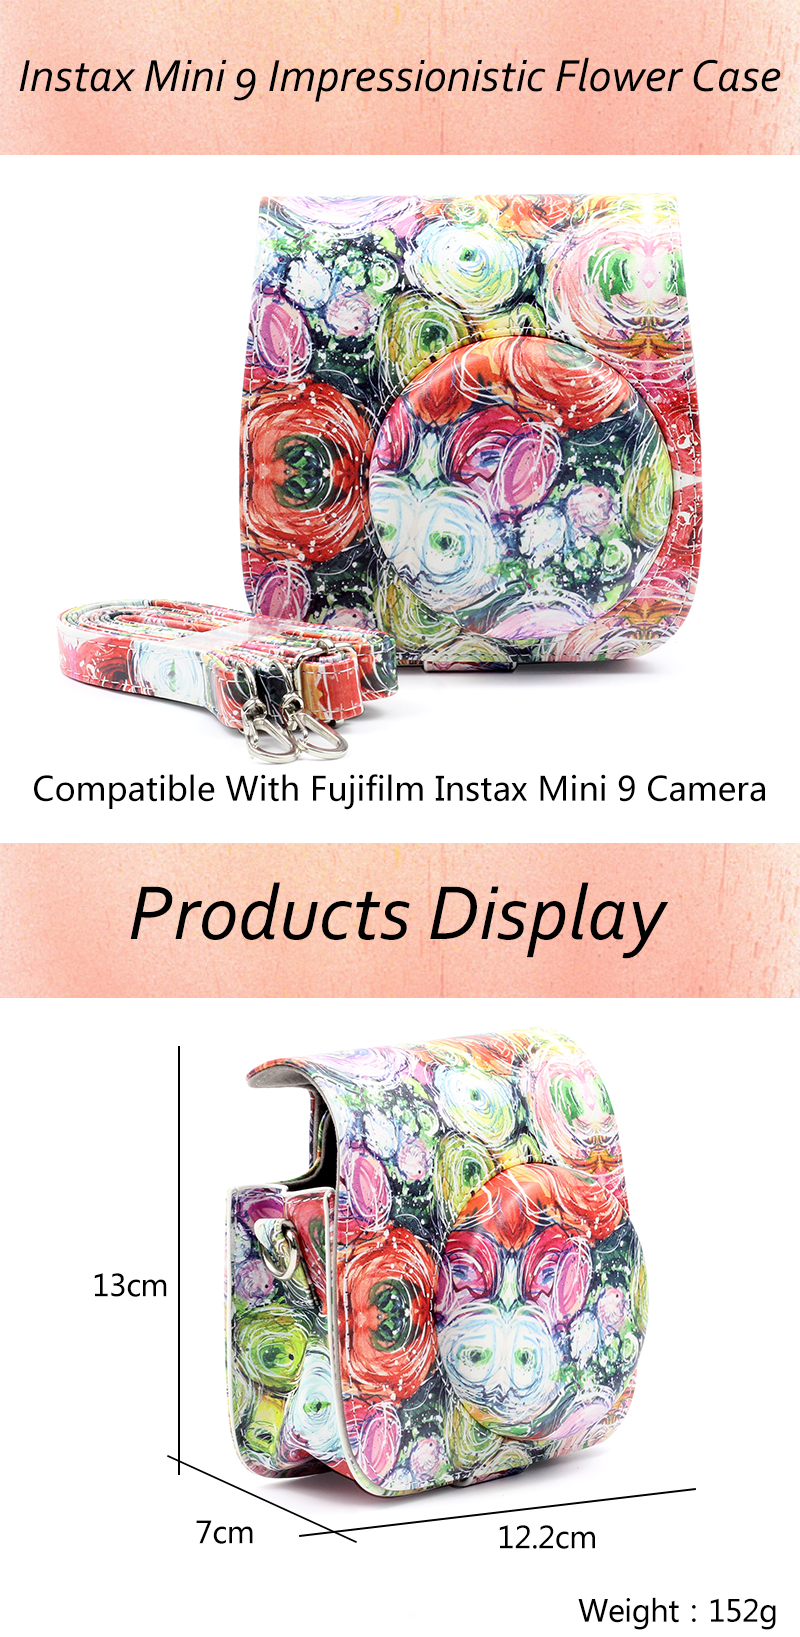 Impressionistic Flower Instax Mini 9 Case